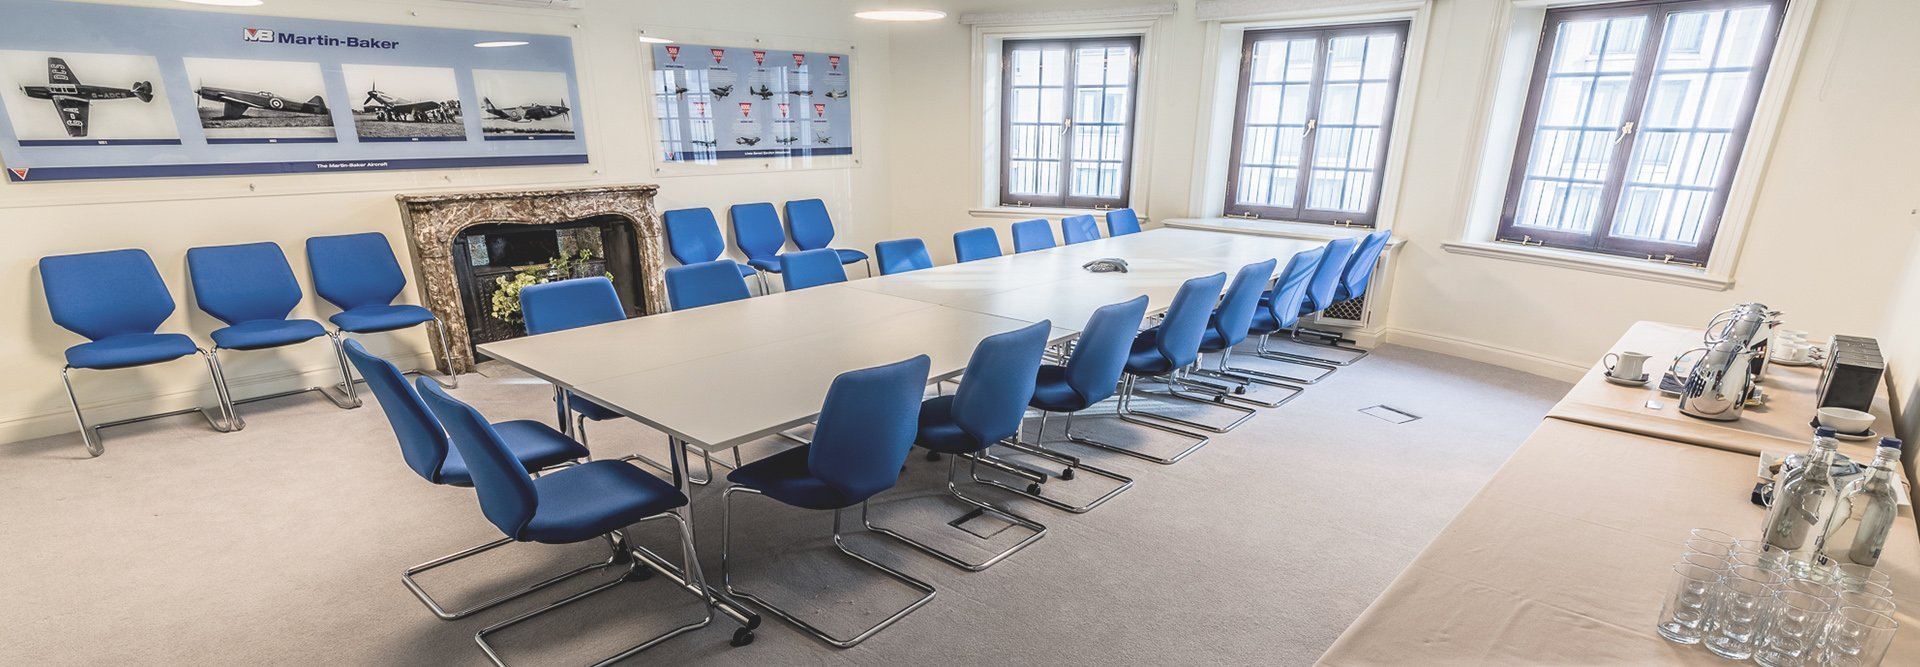 Room set up for meeting in boardroom style with blue chairs and refreshments